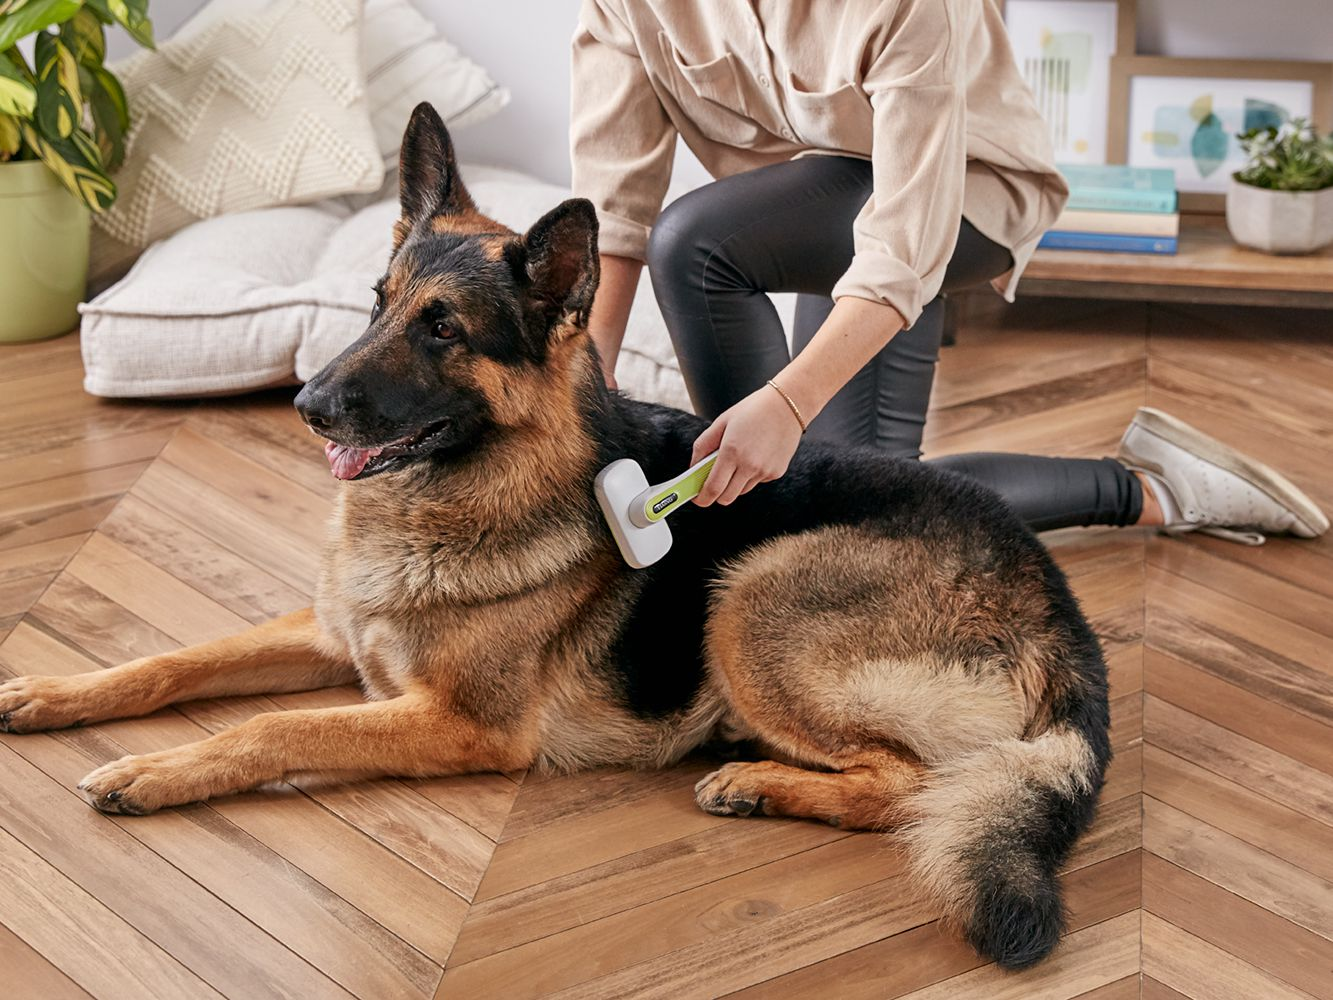 Why Dogs Shed and How to Deal With It